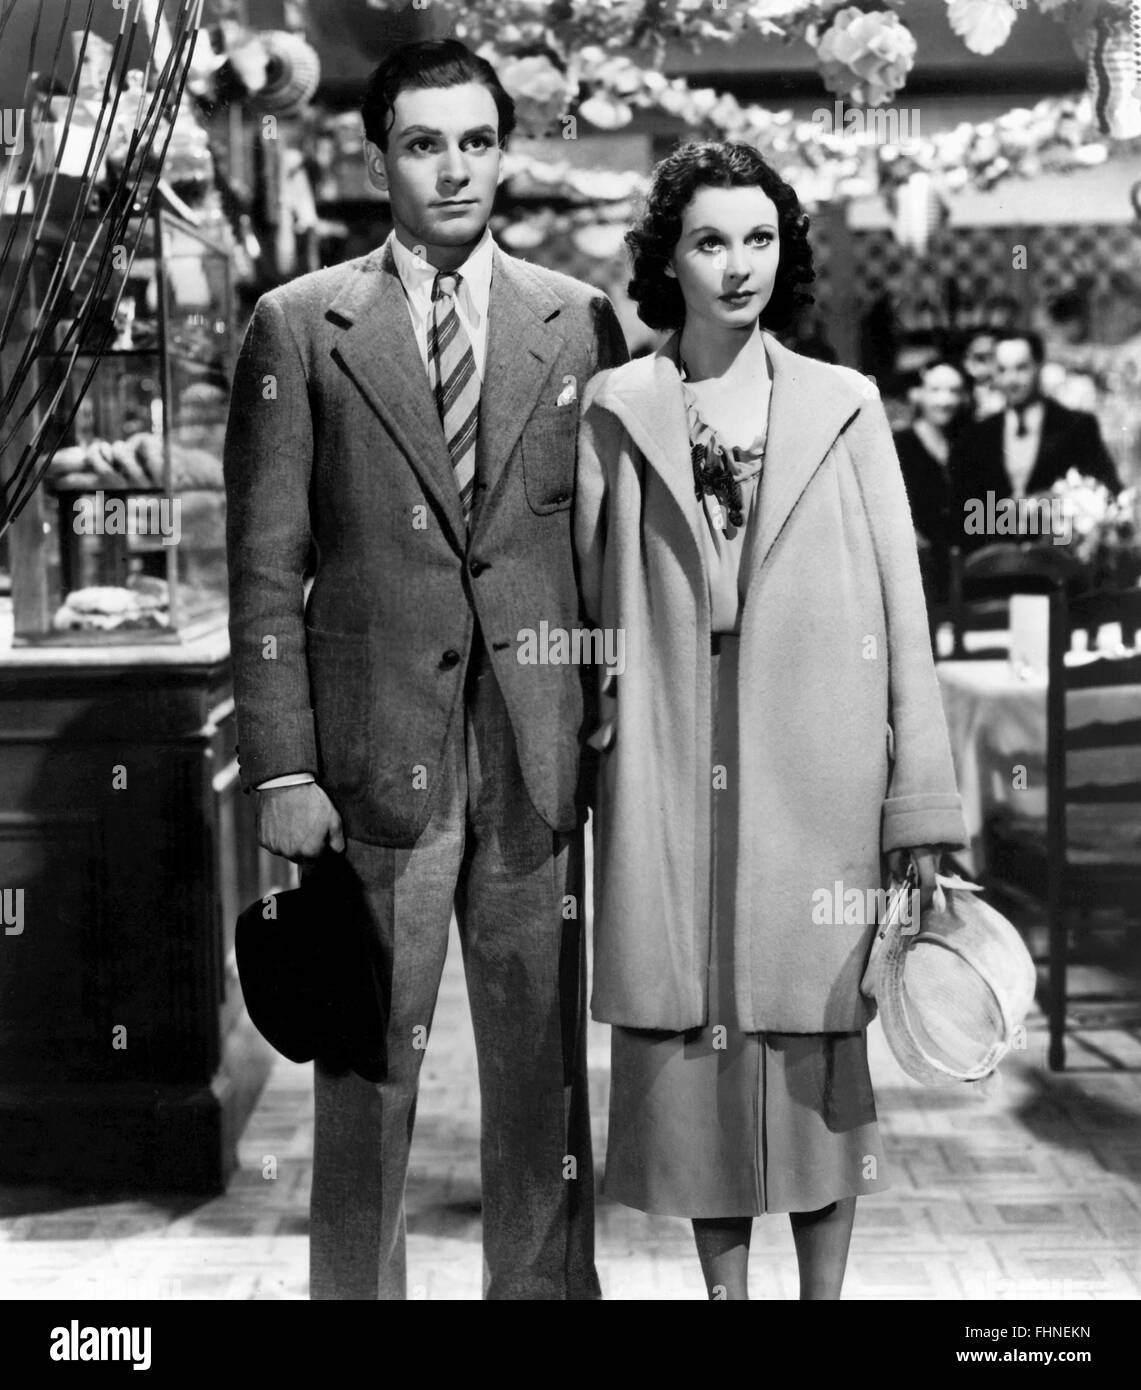 LAURENCE OLIVIER, VIVIEN LEIGH, 21 DAYS TOGETHER, 1940 - Stock Image